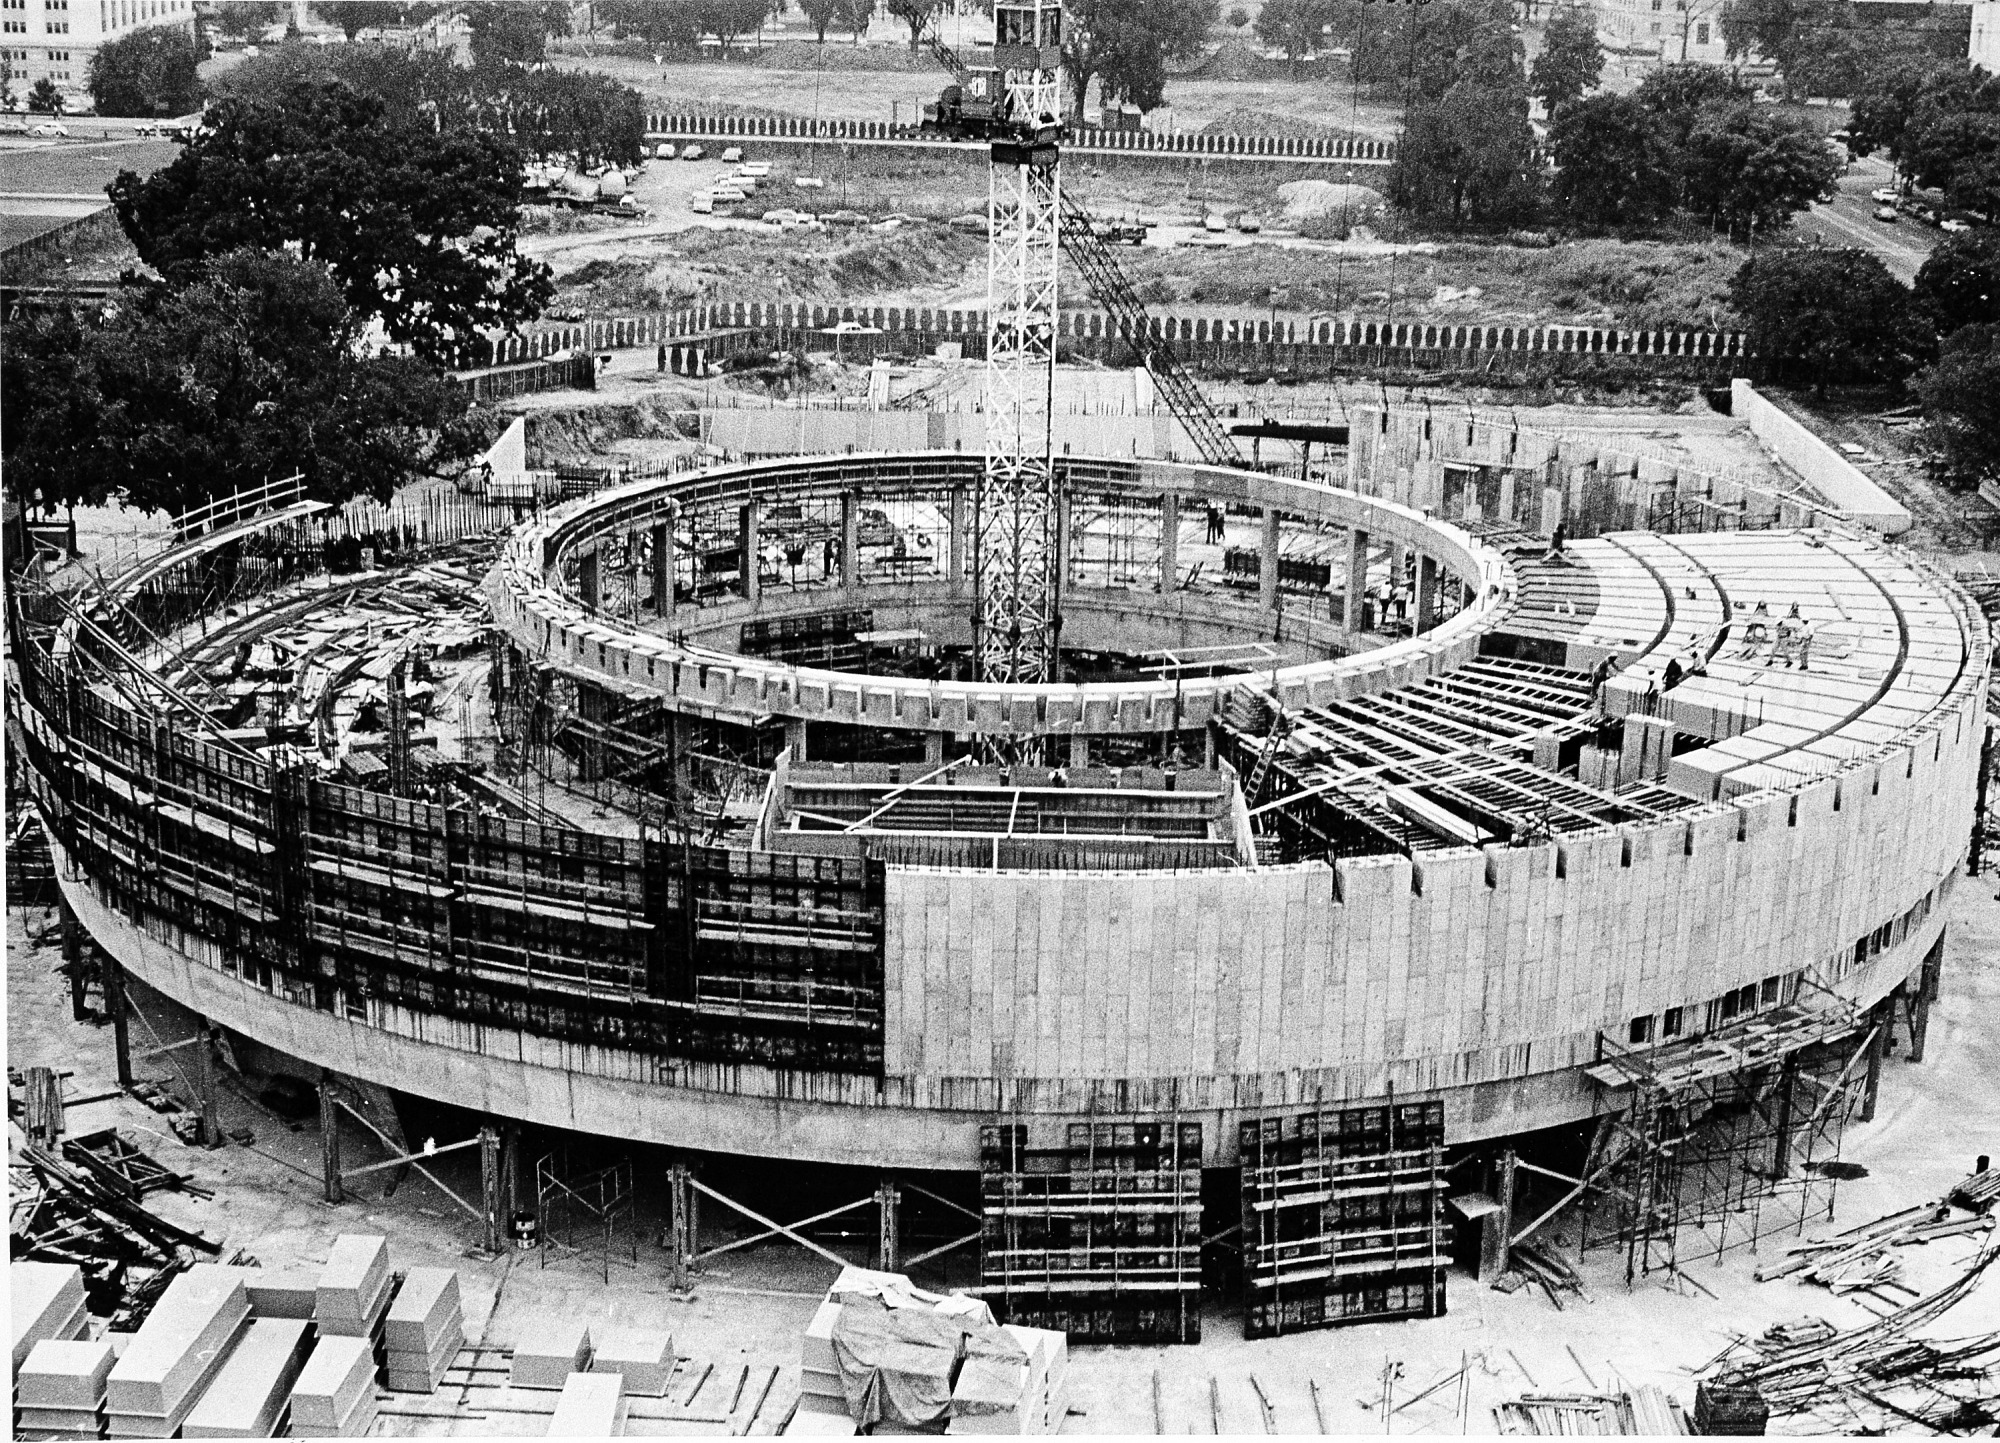 HMSG Under Construction, August 1972, by Unknown, 1972, Smithsonian Archives - History Div, 95-264.